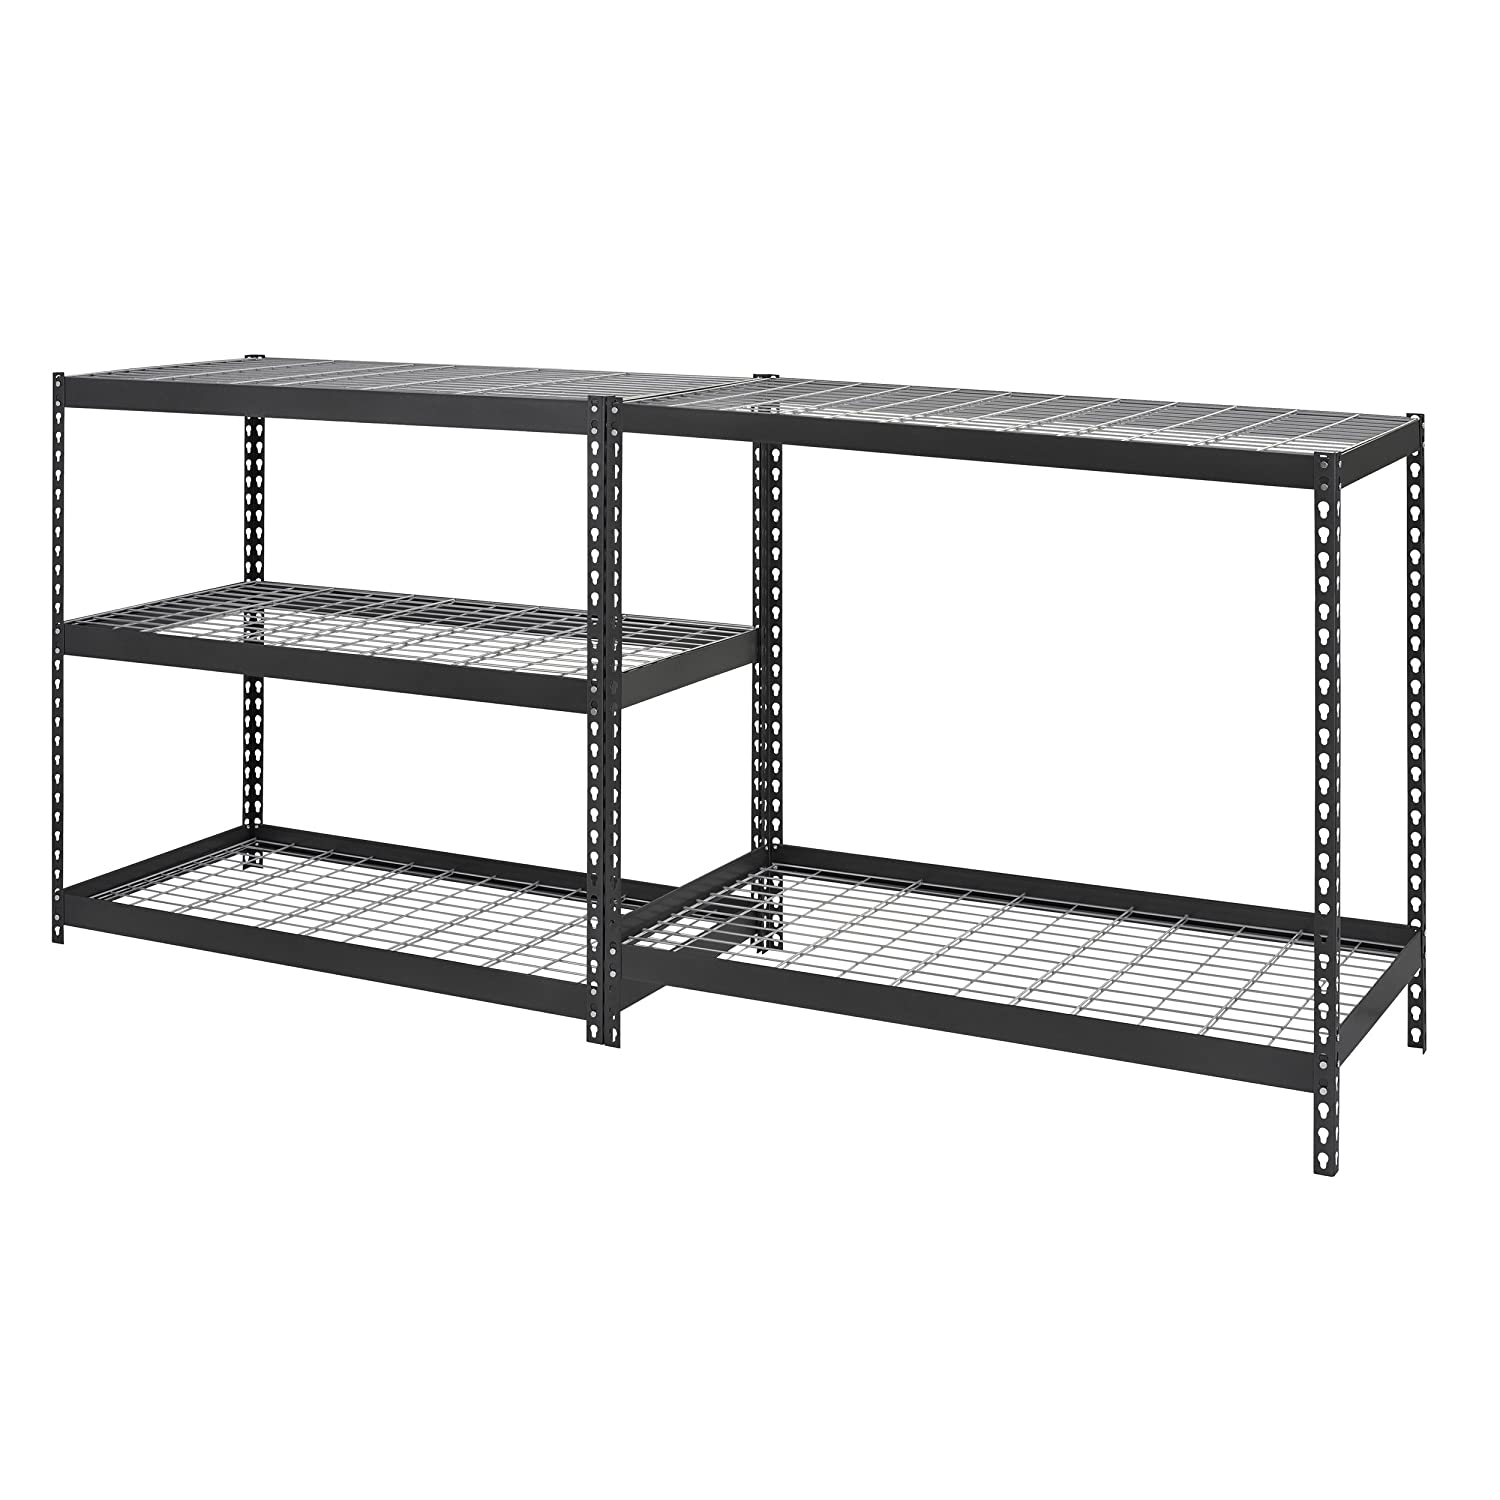 Edsal 5 shelf heavy duty steel shelving - Edsal Mrop3618w5b Steel Storage Rack 5 Adjustable Shelves 5000 Lb Capacity 72 Height X 36 Width X 18 Depth Black Amazon Com Industrial